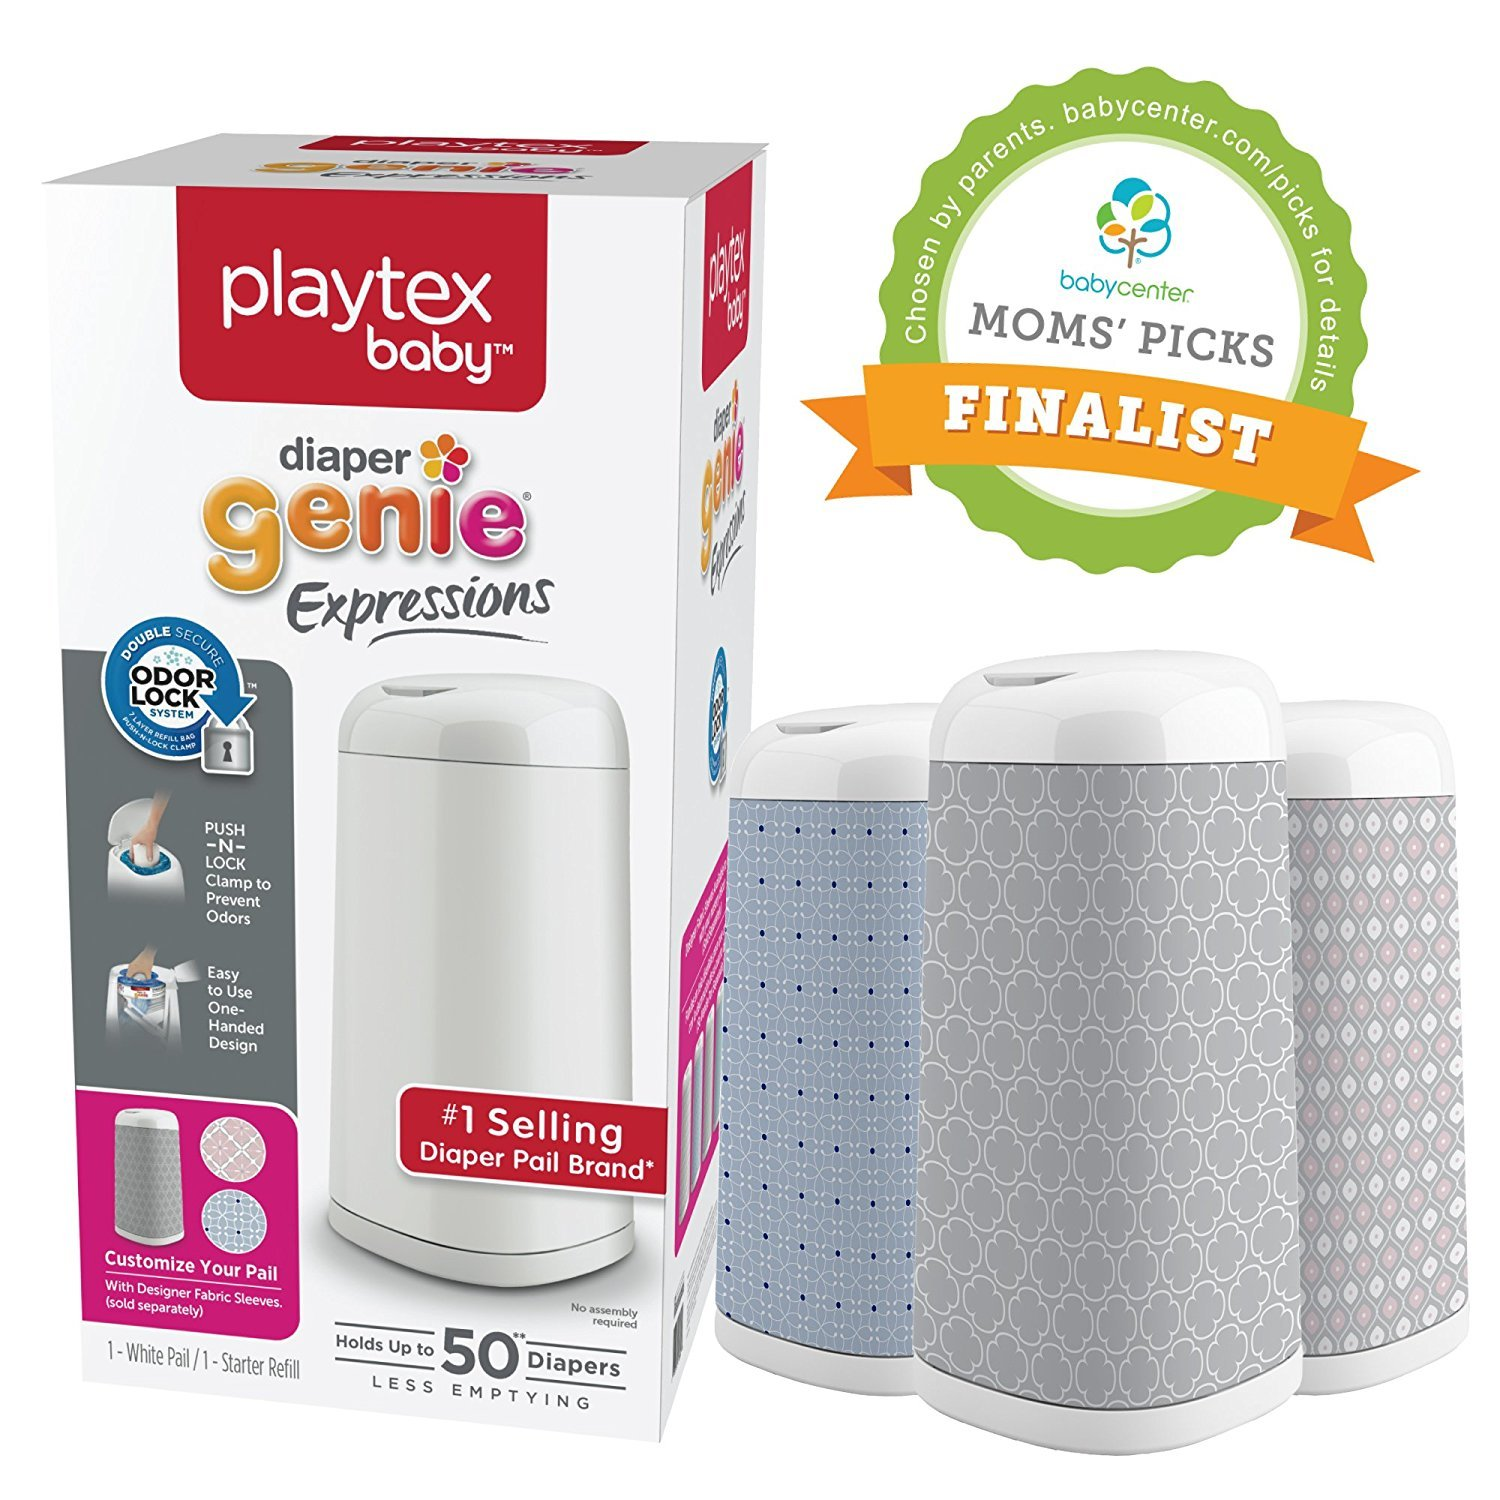 Playtex Diaper Genie Expressions Customizable Diaper Pail with Starter Refill by Diaper Genie